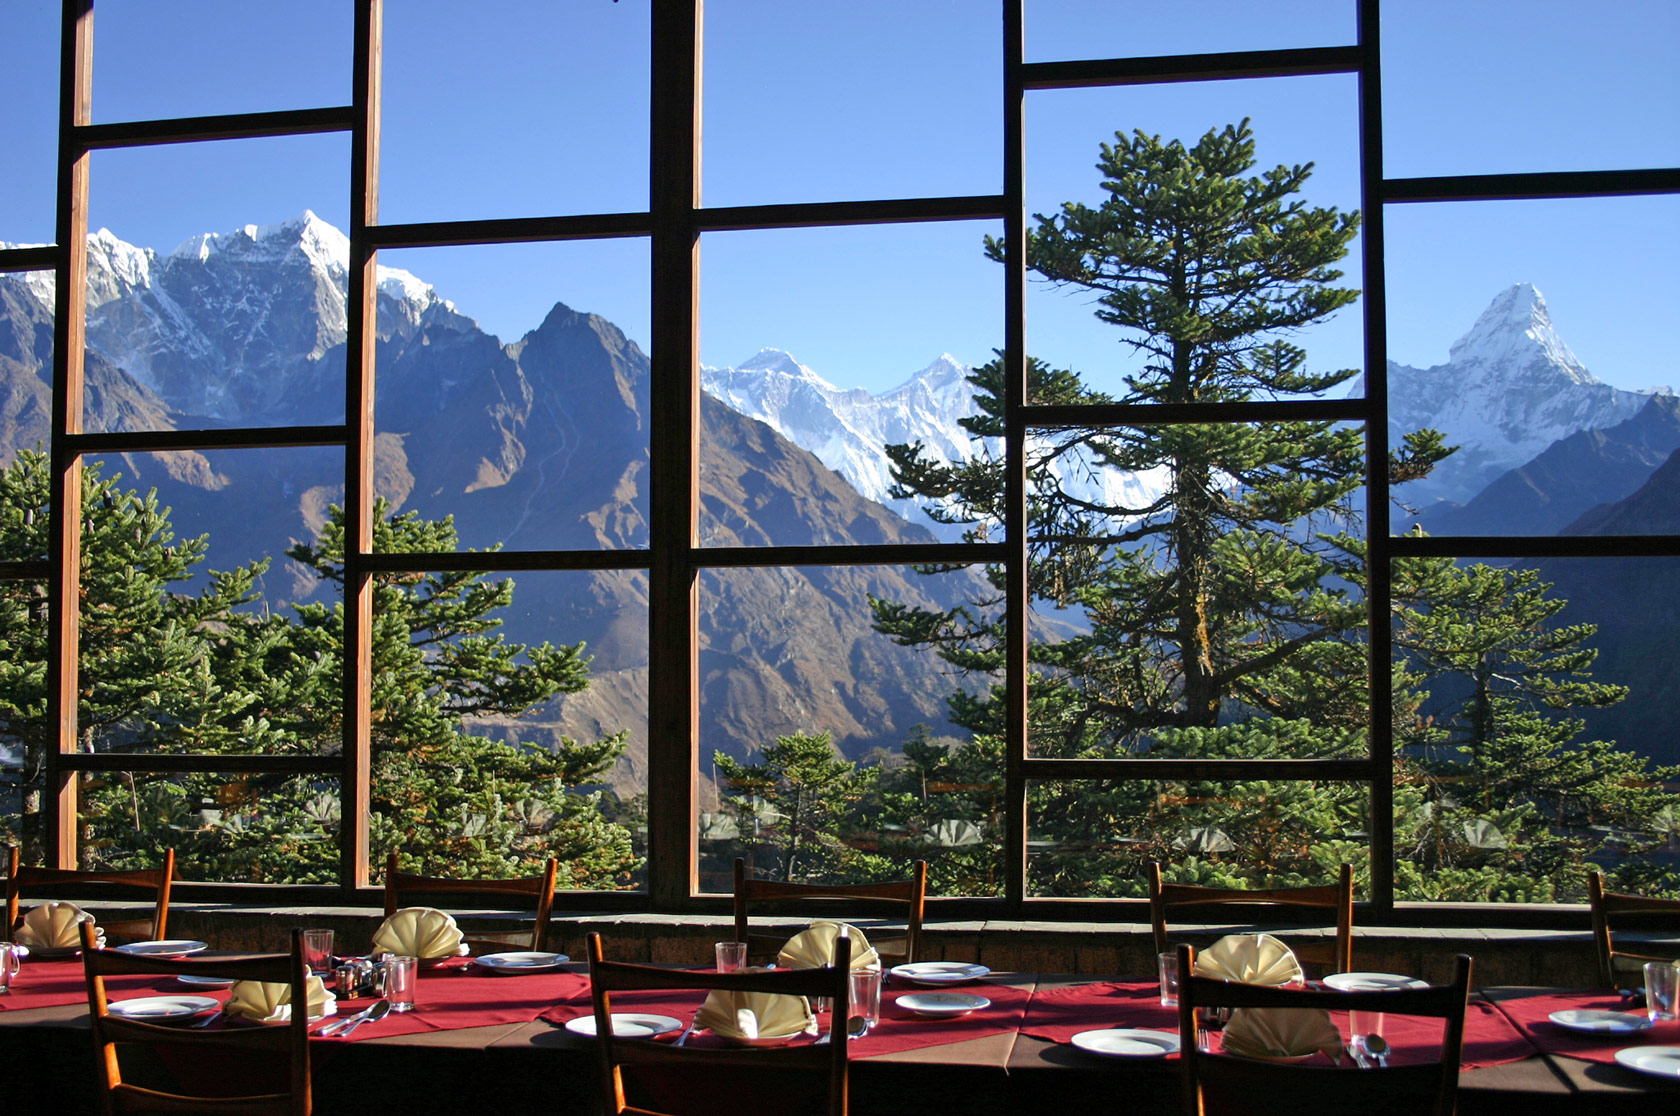 Dining hall in Hotel Everest View